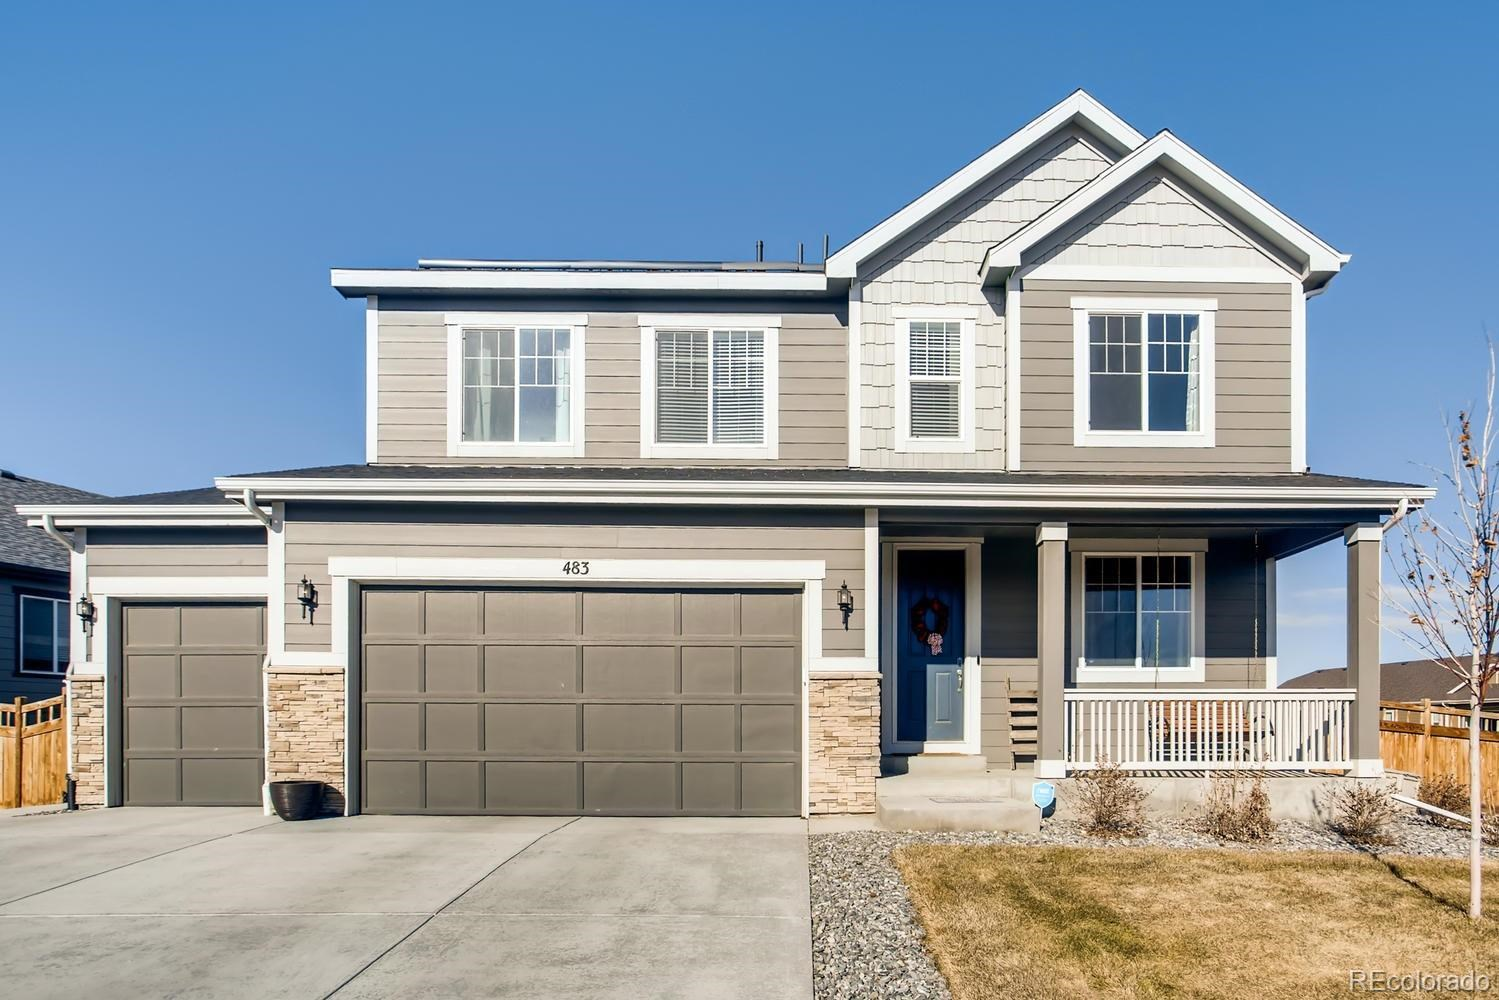 MLS# 4909159 - 2 - 483 Iris Street, Brighton, CO 80601